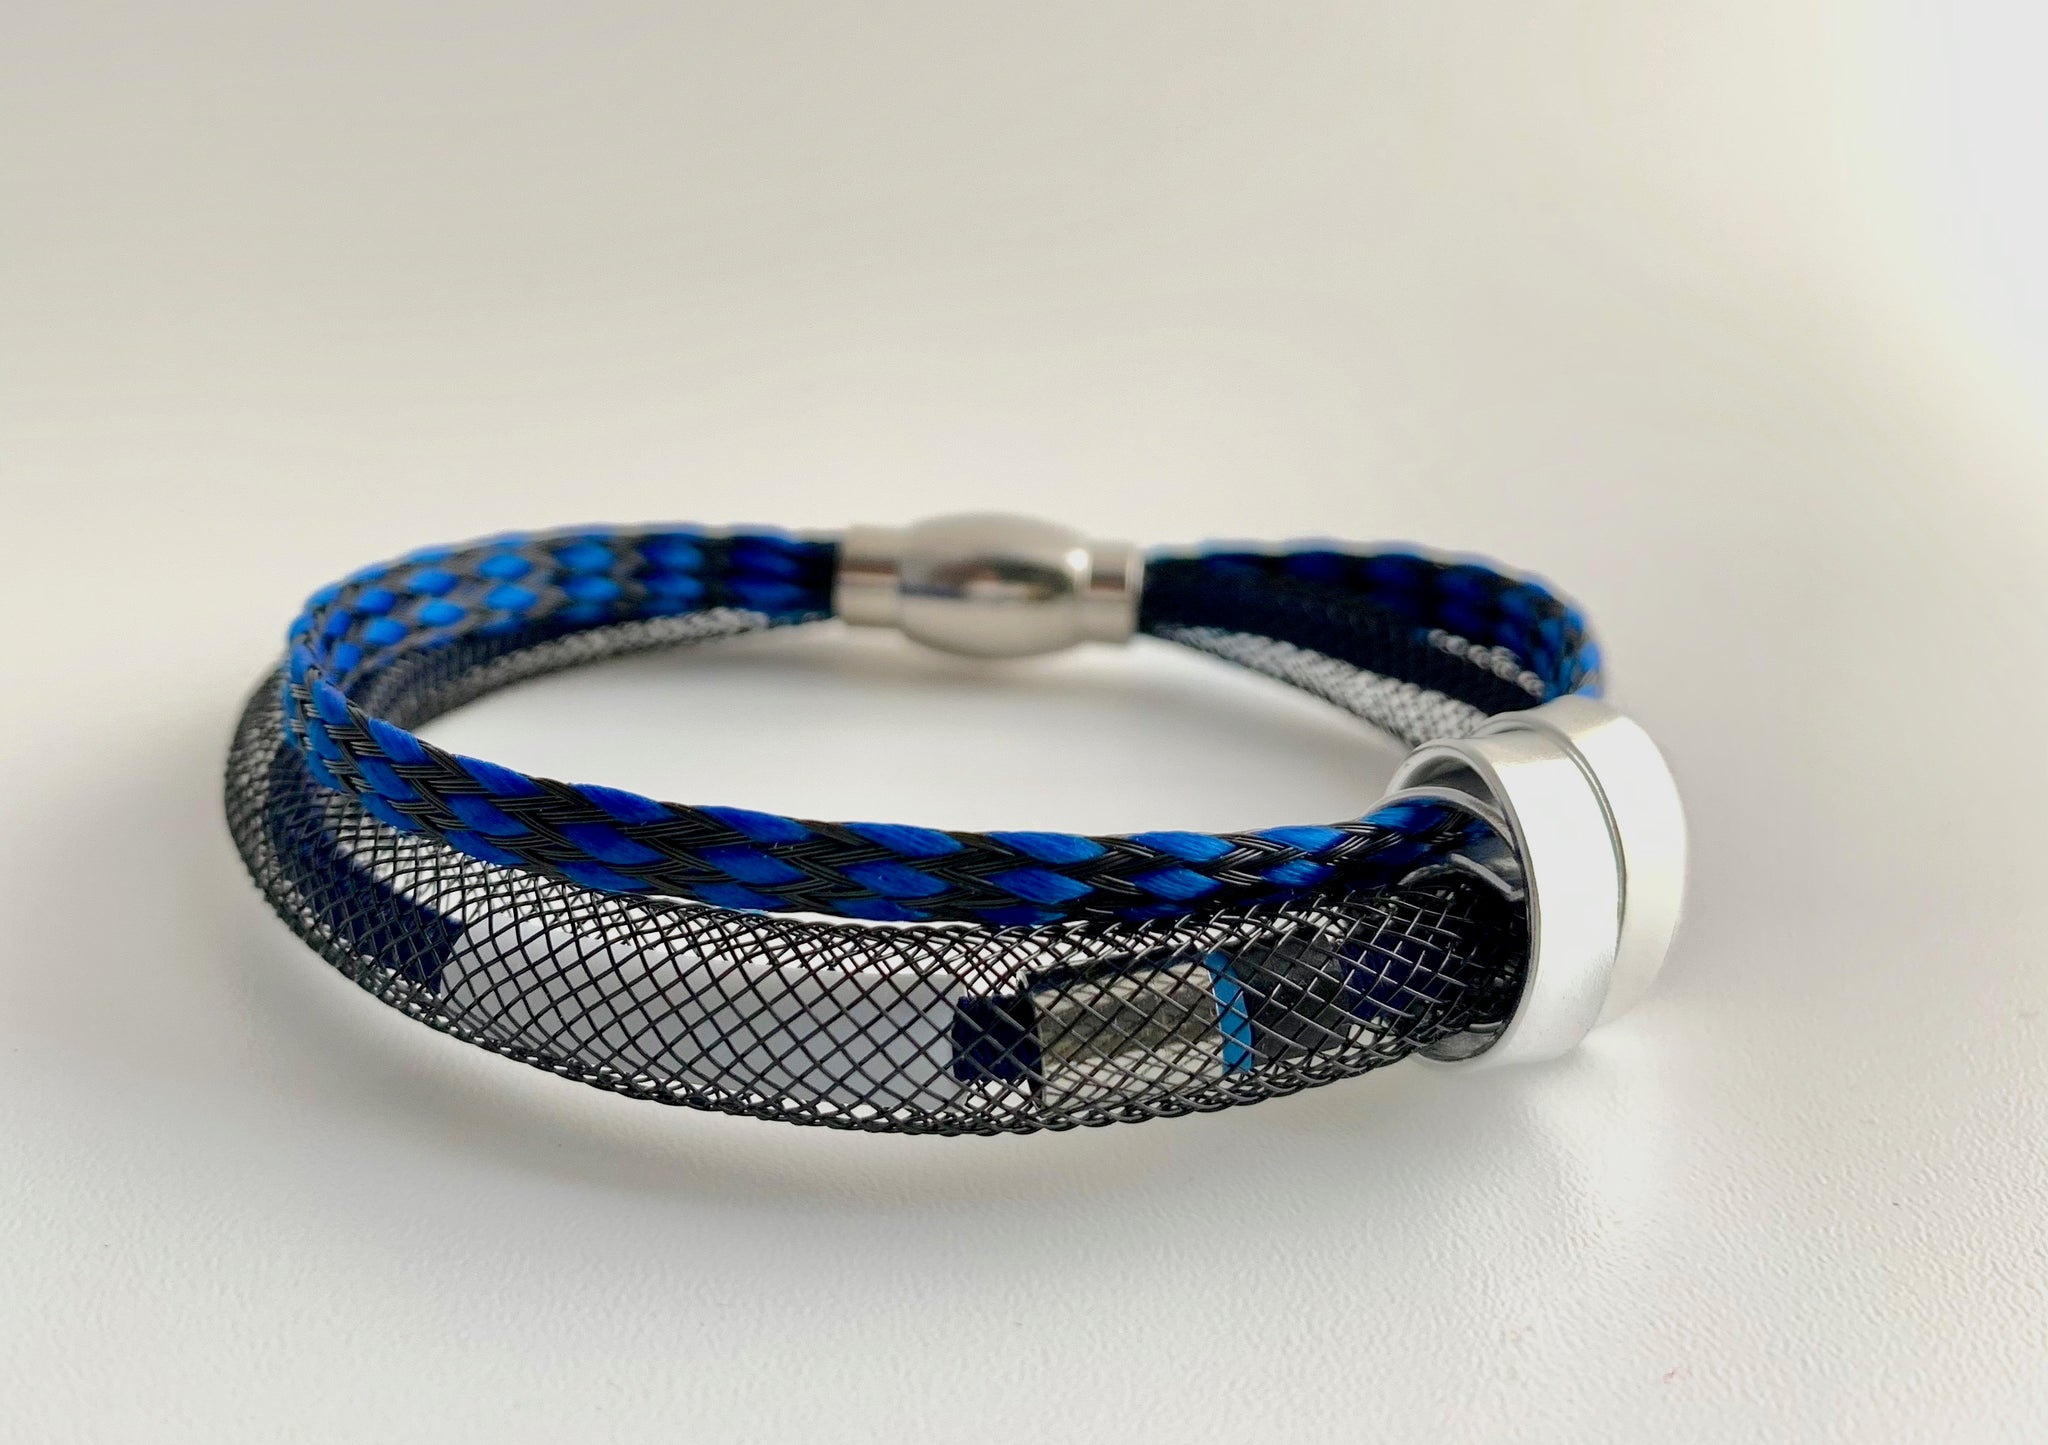 Netted Cable Connect Bracelet in blue and black